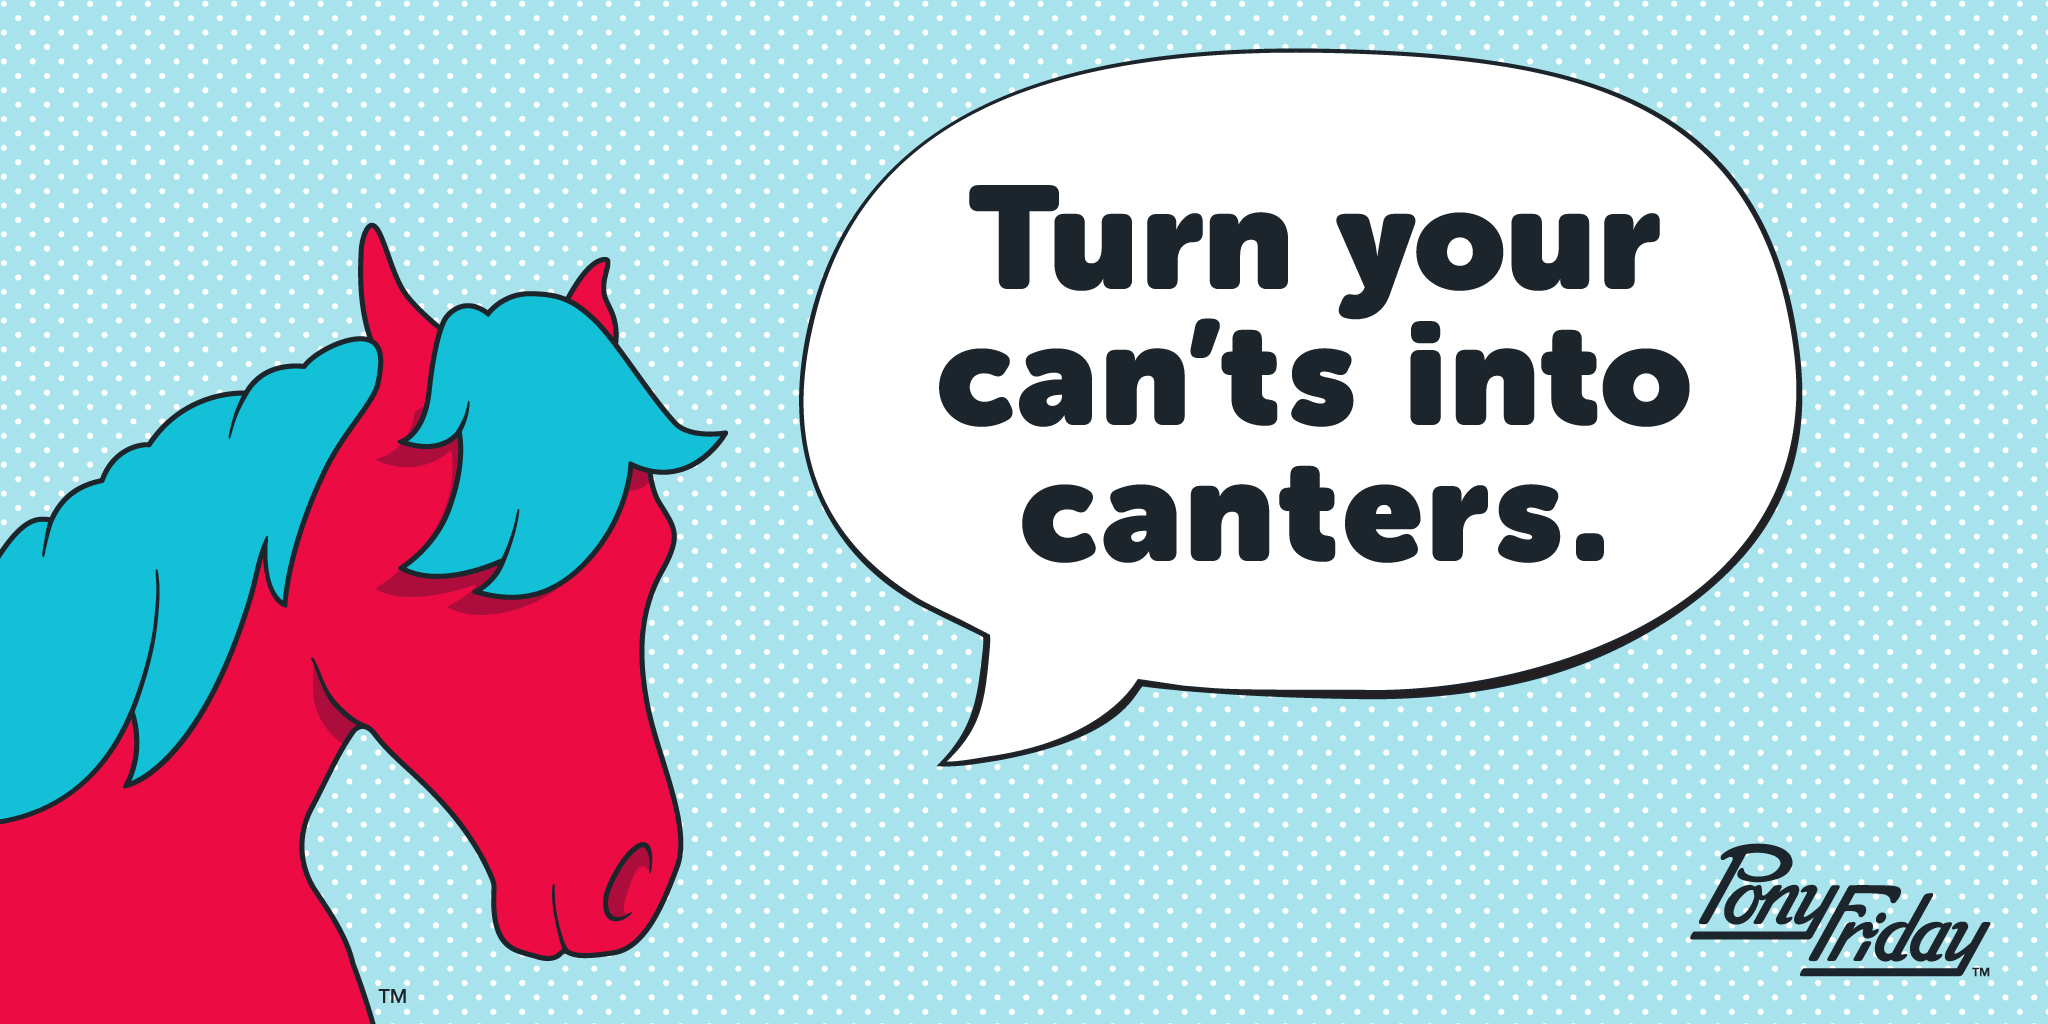 Pony-Friday-Cants-into-Cans-Canters-Blog-Header-Comic-Speech-Bubble.jpg